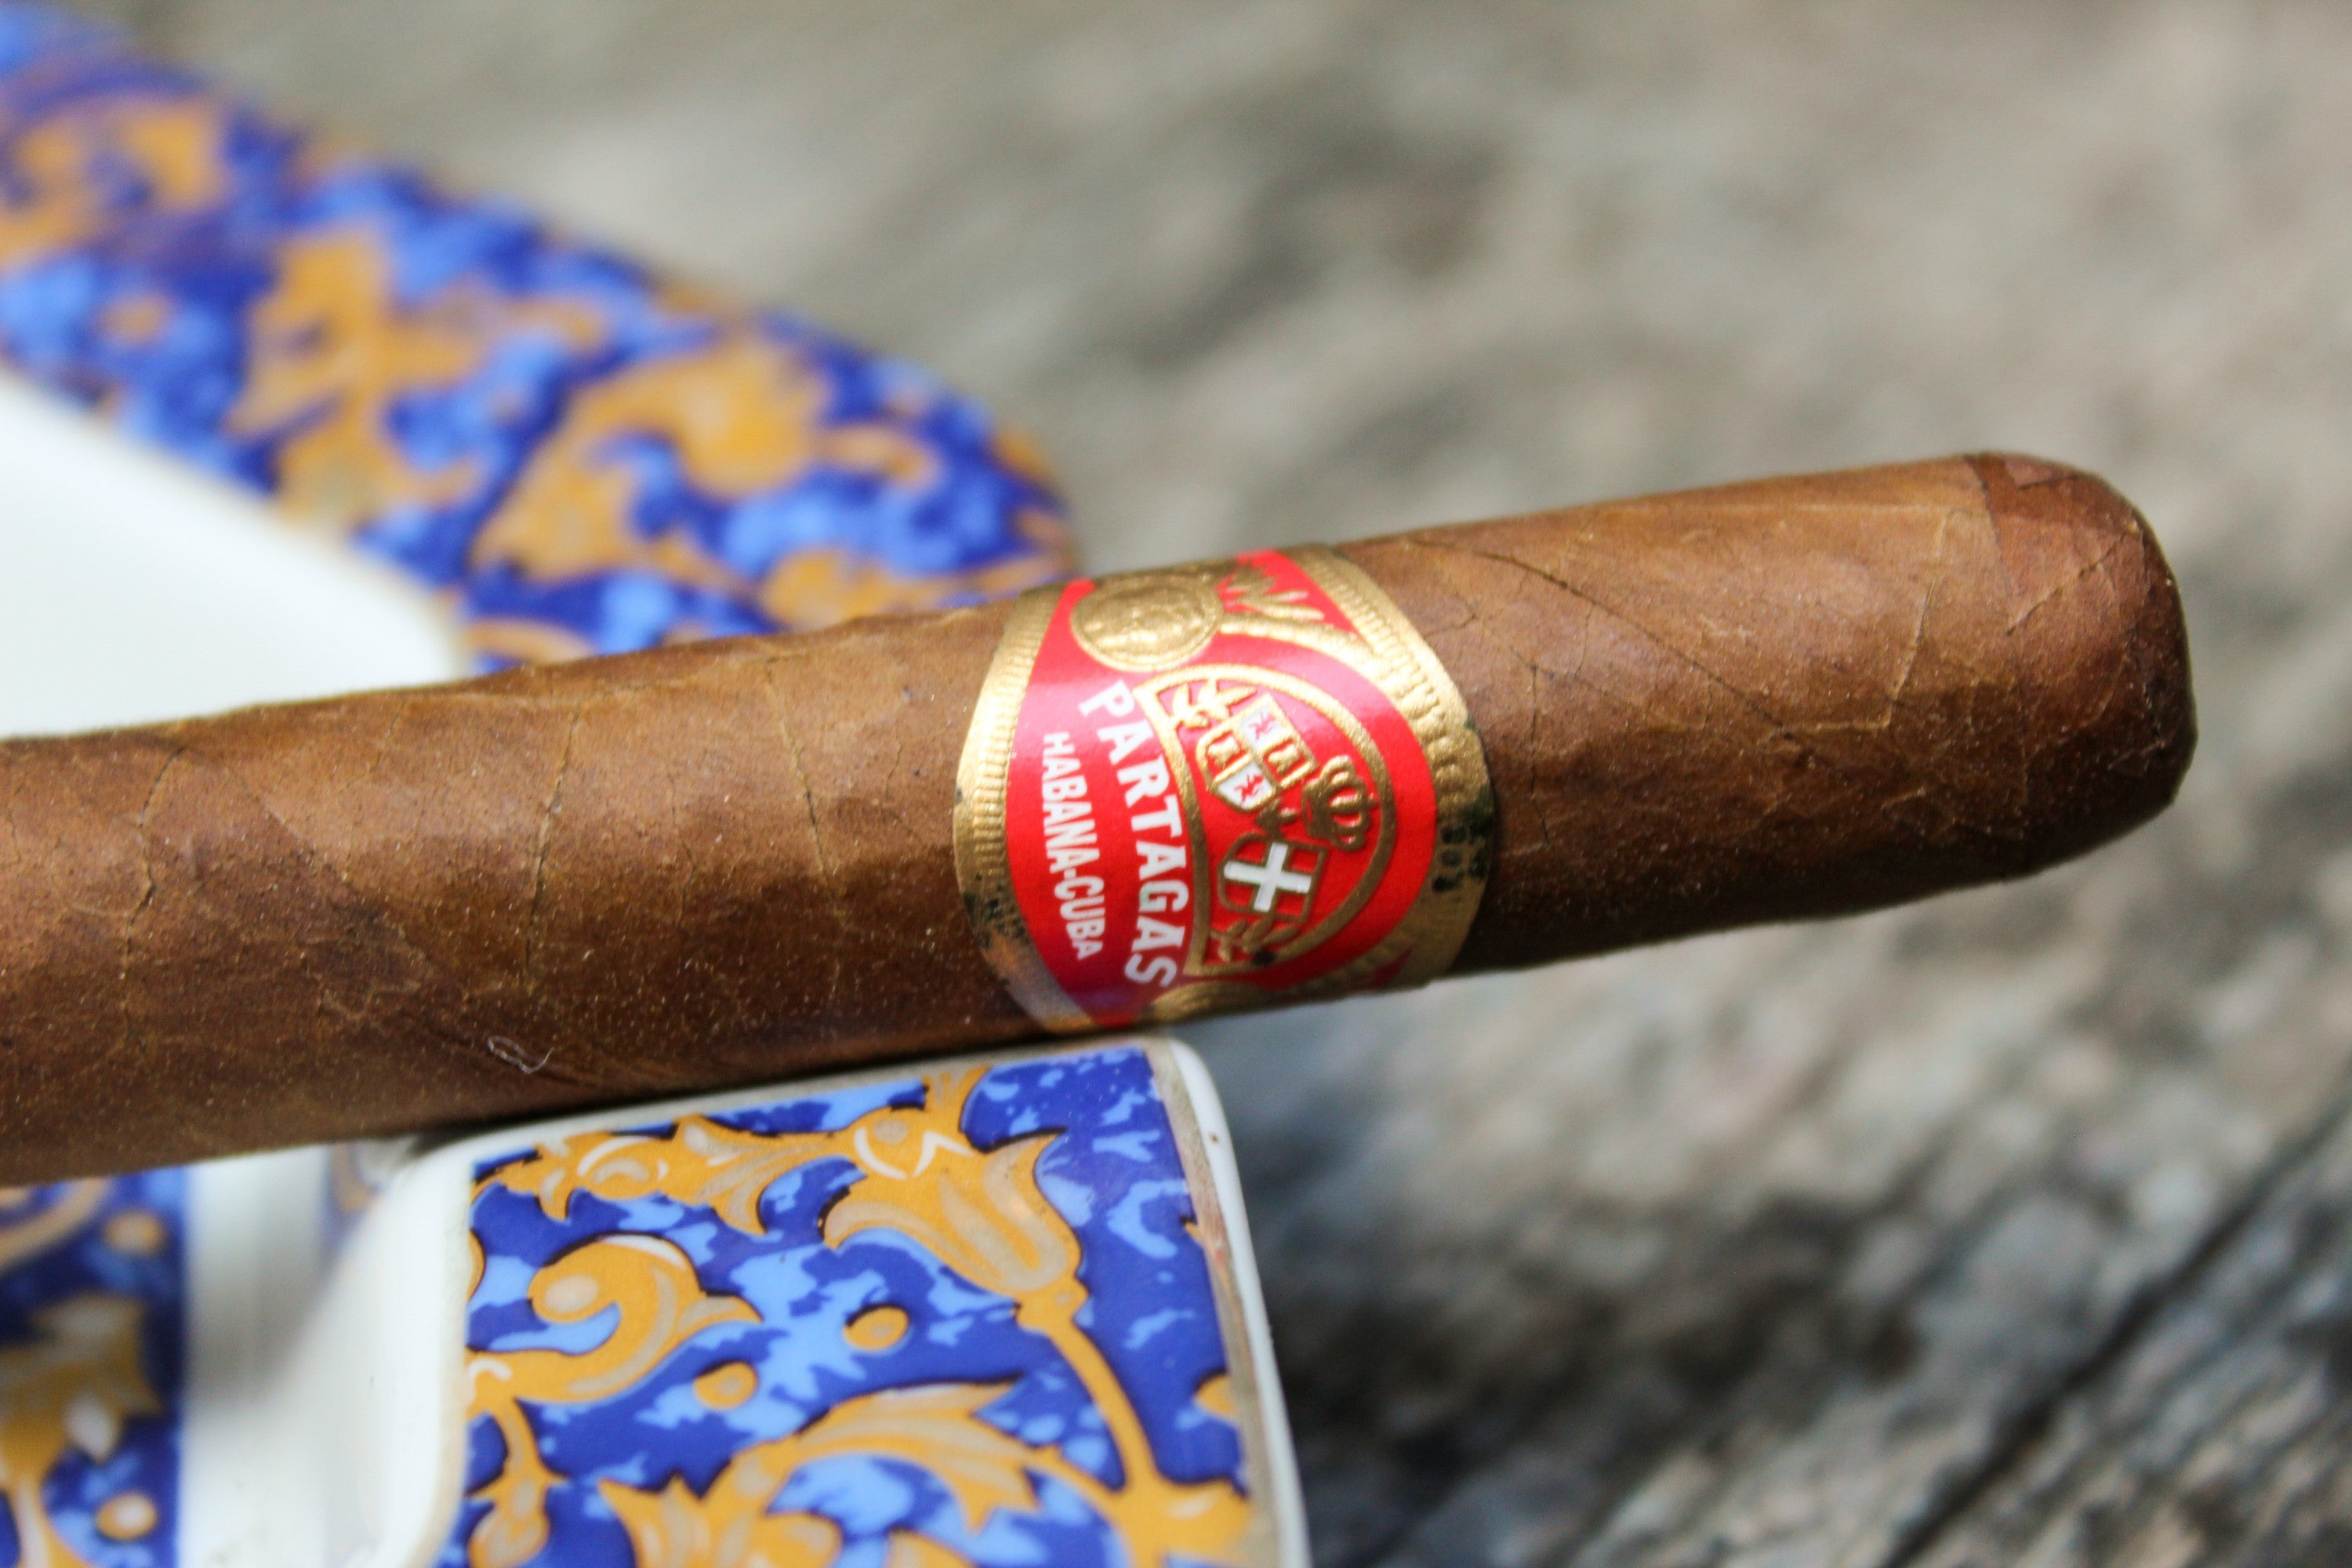 The classic Partagas band on the Partagas Shorts